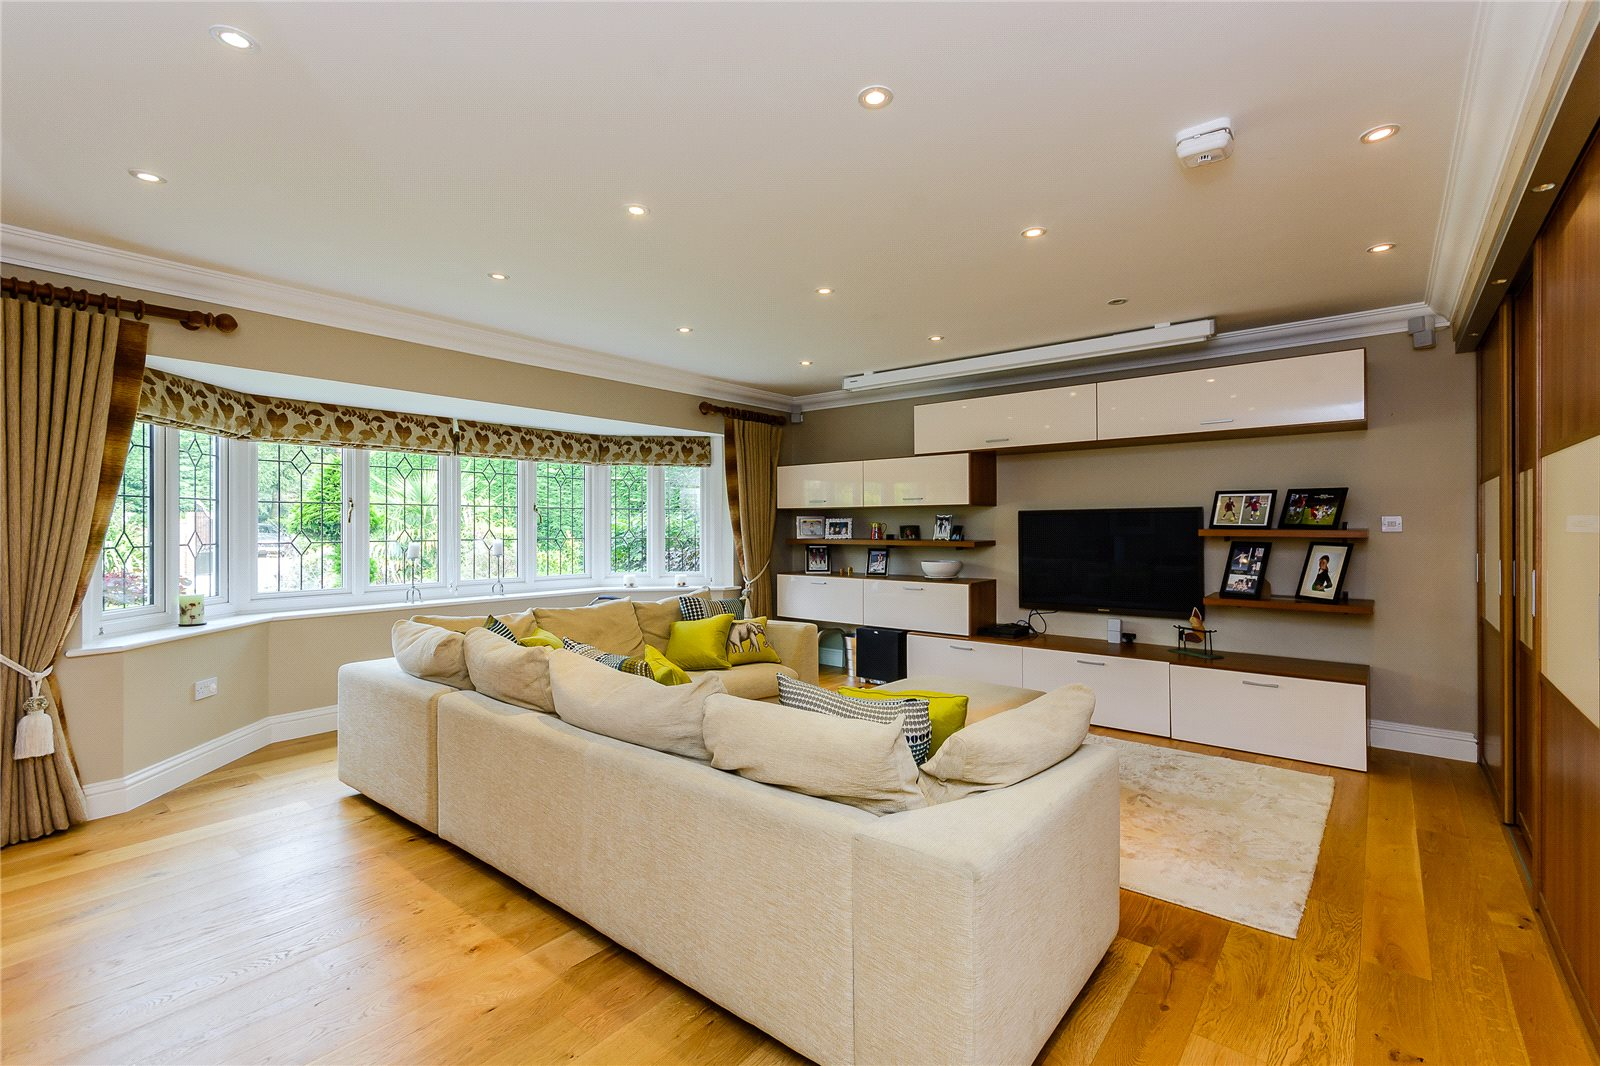 Additional photo for property listing at Maltmans Lane, Gerrards Cross, Buckinghamshire, SL9 Gerrards Cross, イギリス